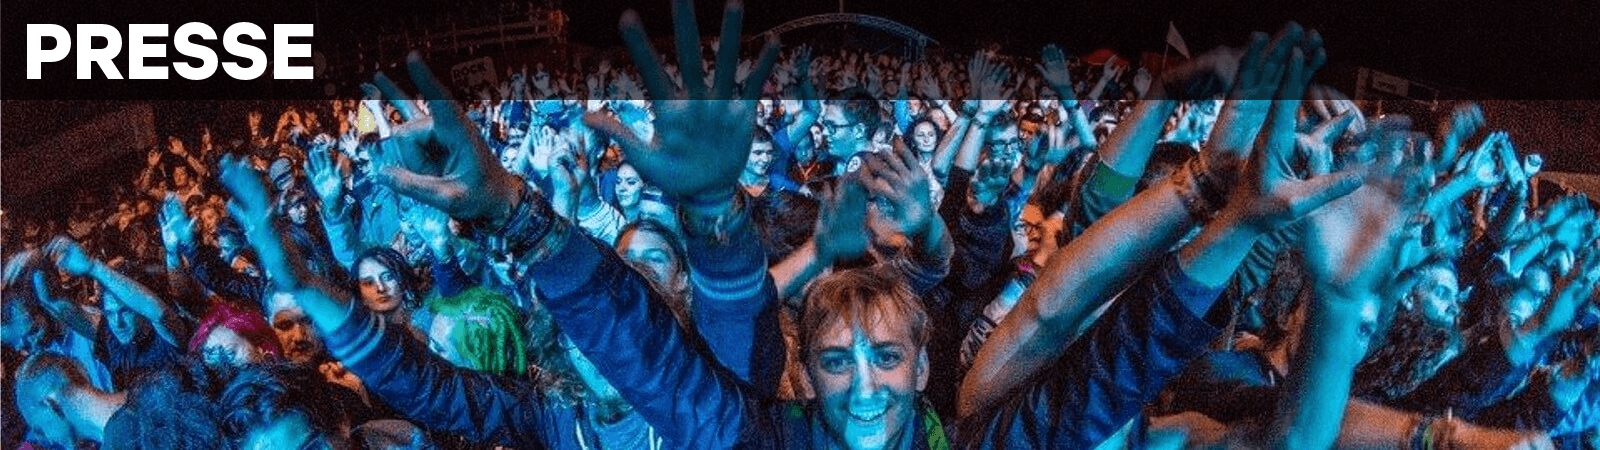 Rock im Dorf Festival Crowd